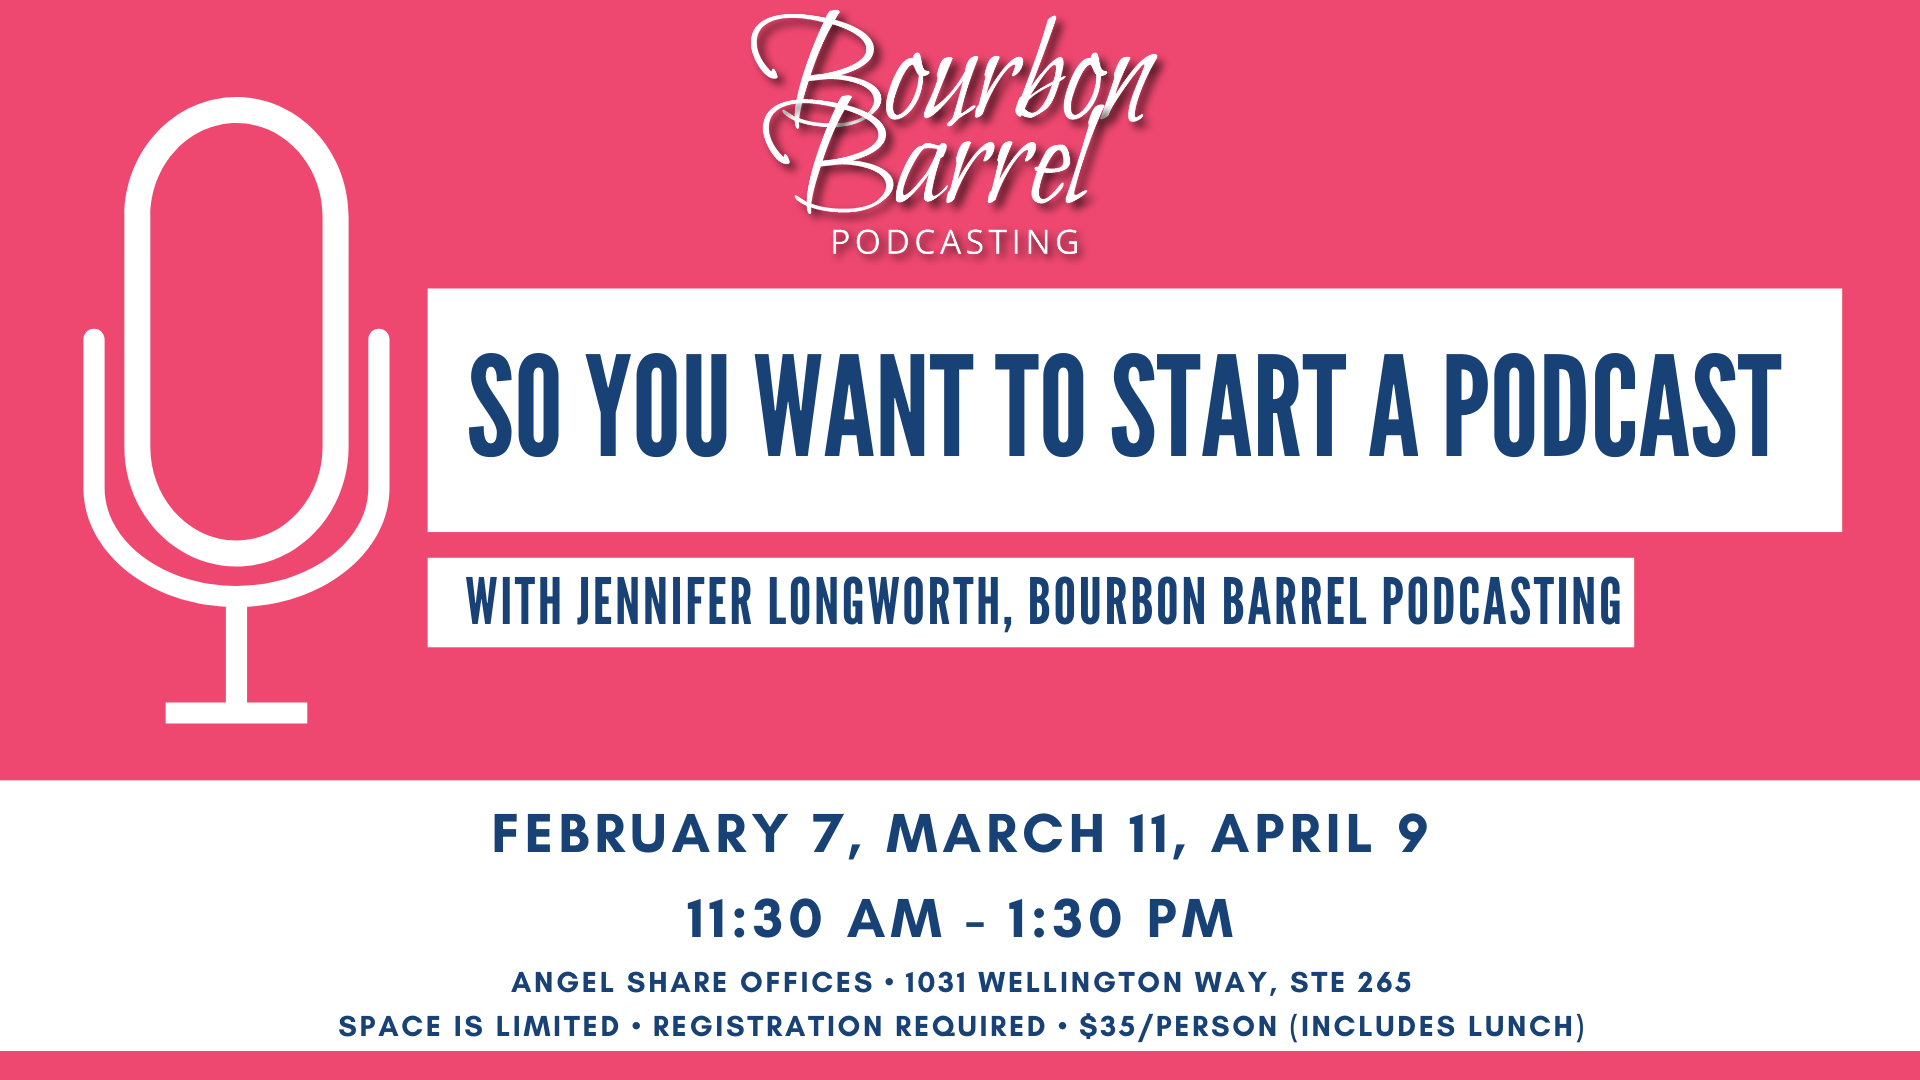 SO You want to Start a Podcast with Jennifer Longworth, Bourbon Barrel Podcasting